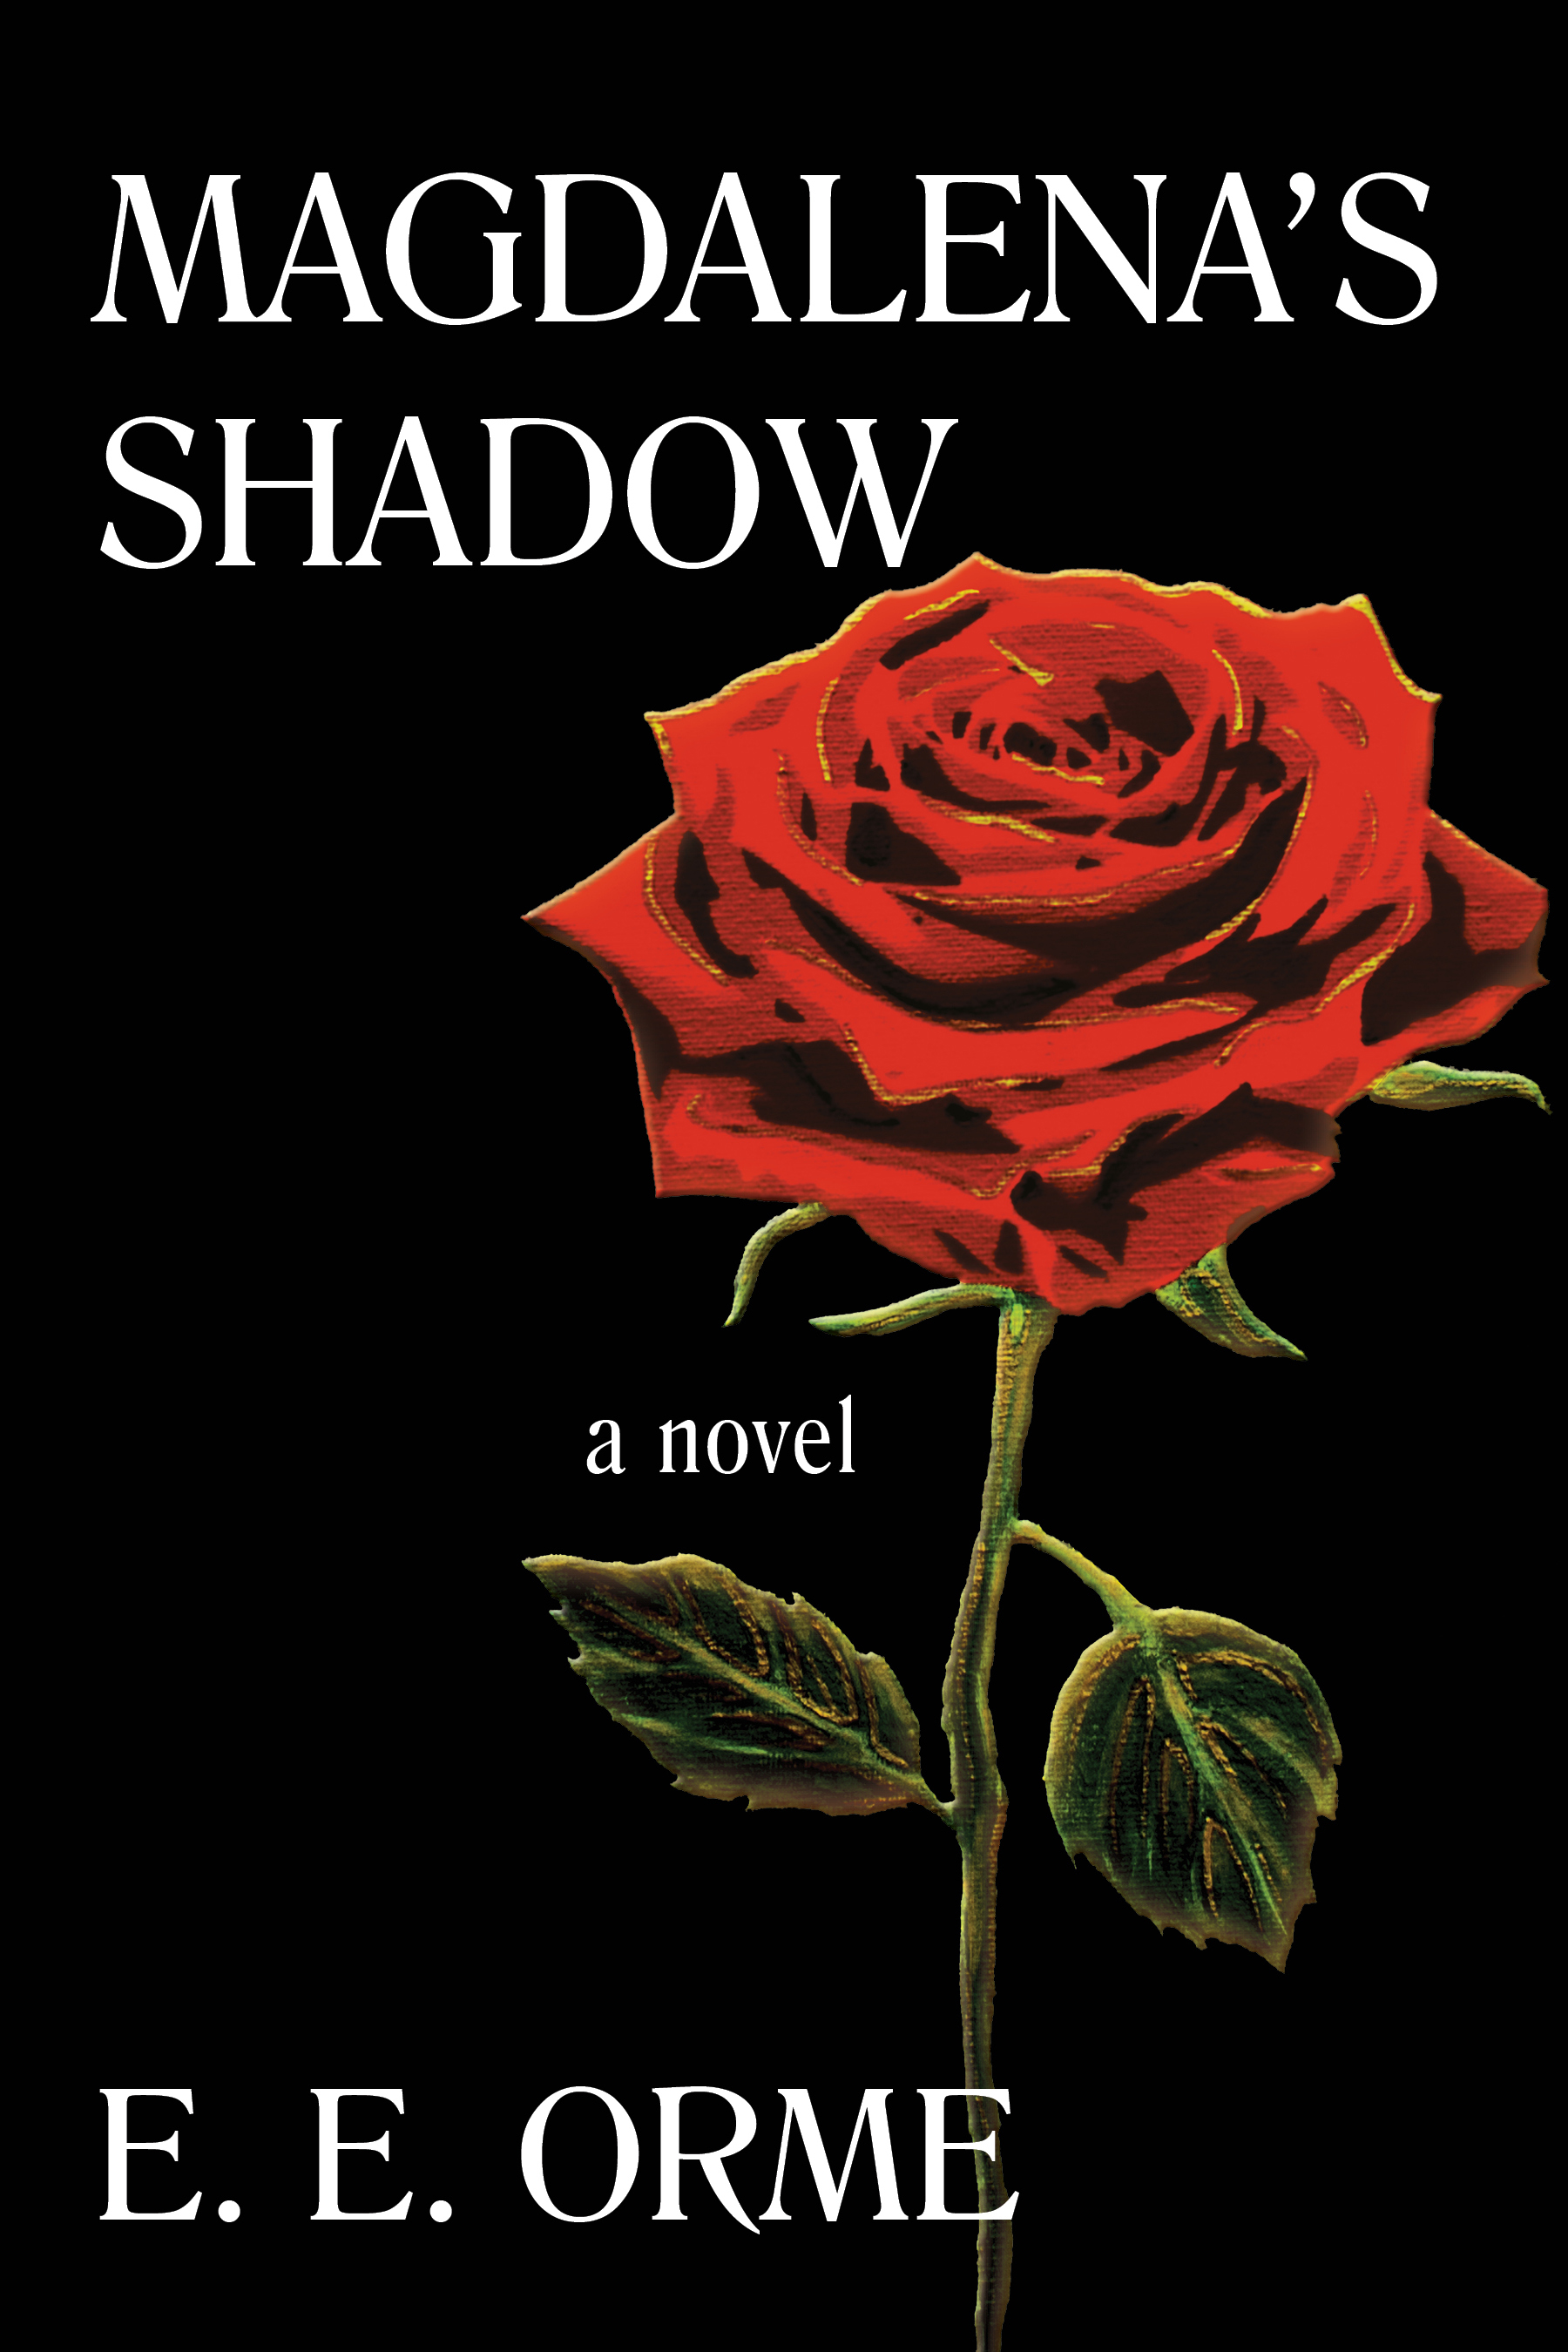 Magdalena's Shadow   by E. E. Orme    Magdalena's Shadow   is available on Amazon as a  paperback  and  Kindle , as well as other ebook platforms!